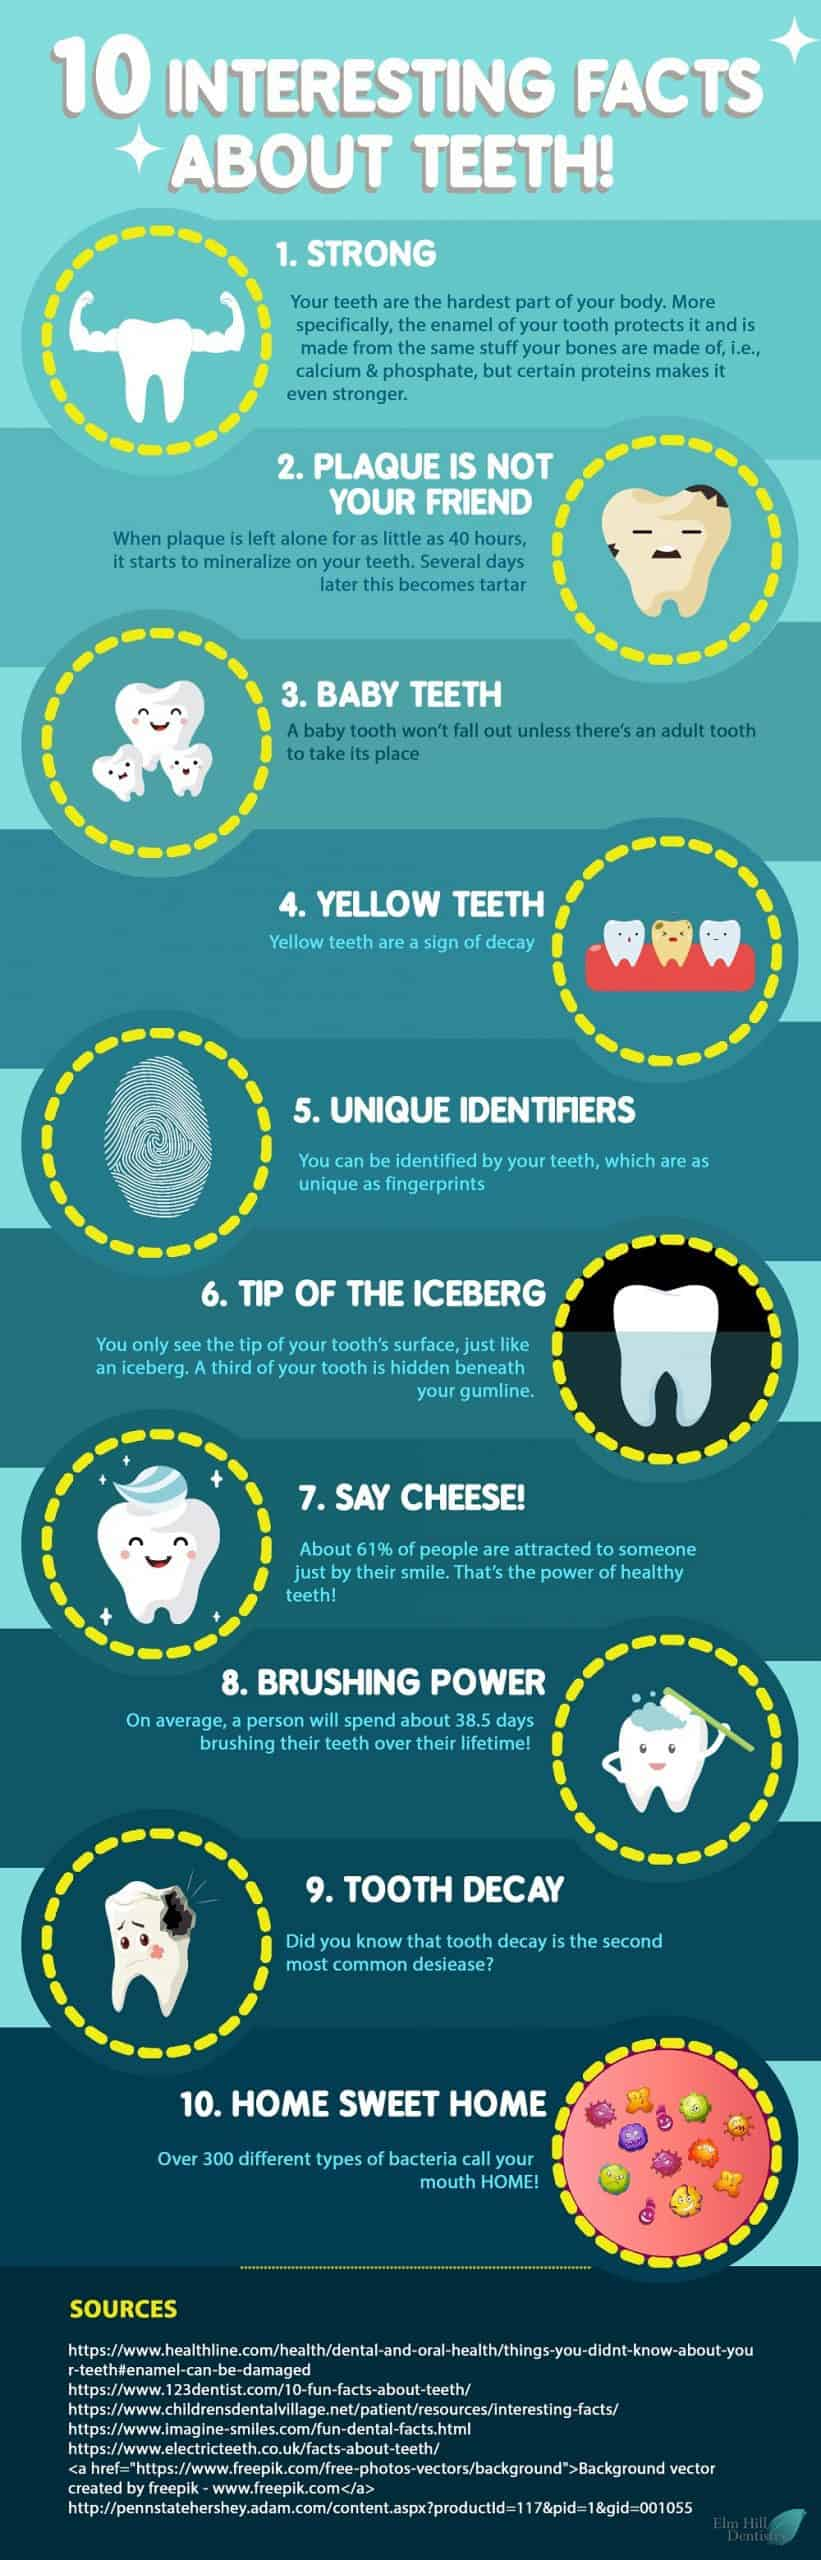 10 Interesting Facts About Your Teeth That You Didn't Know